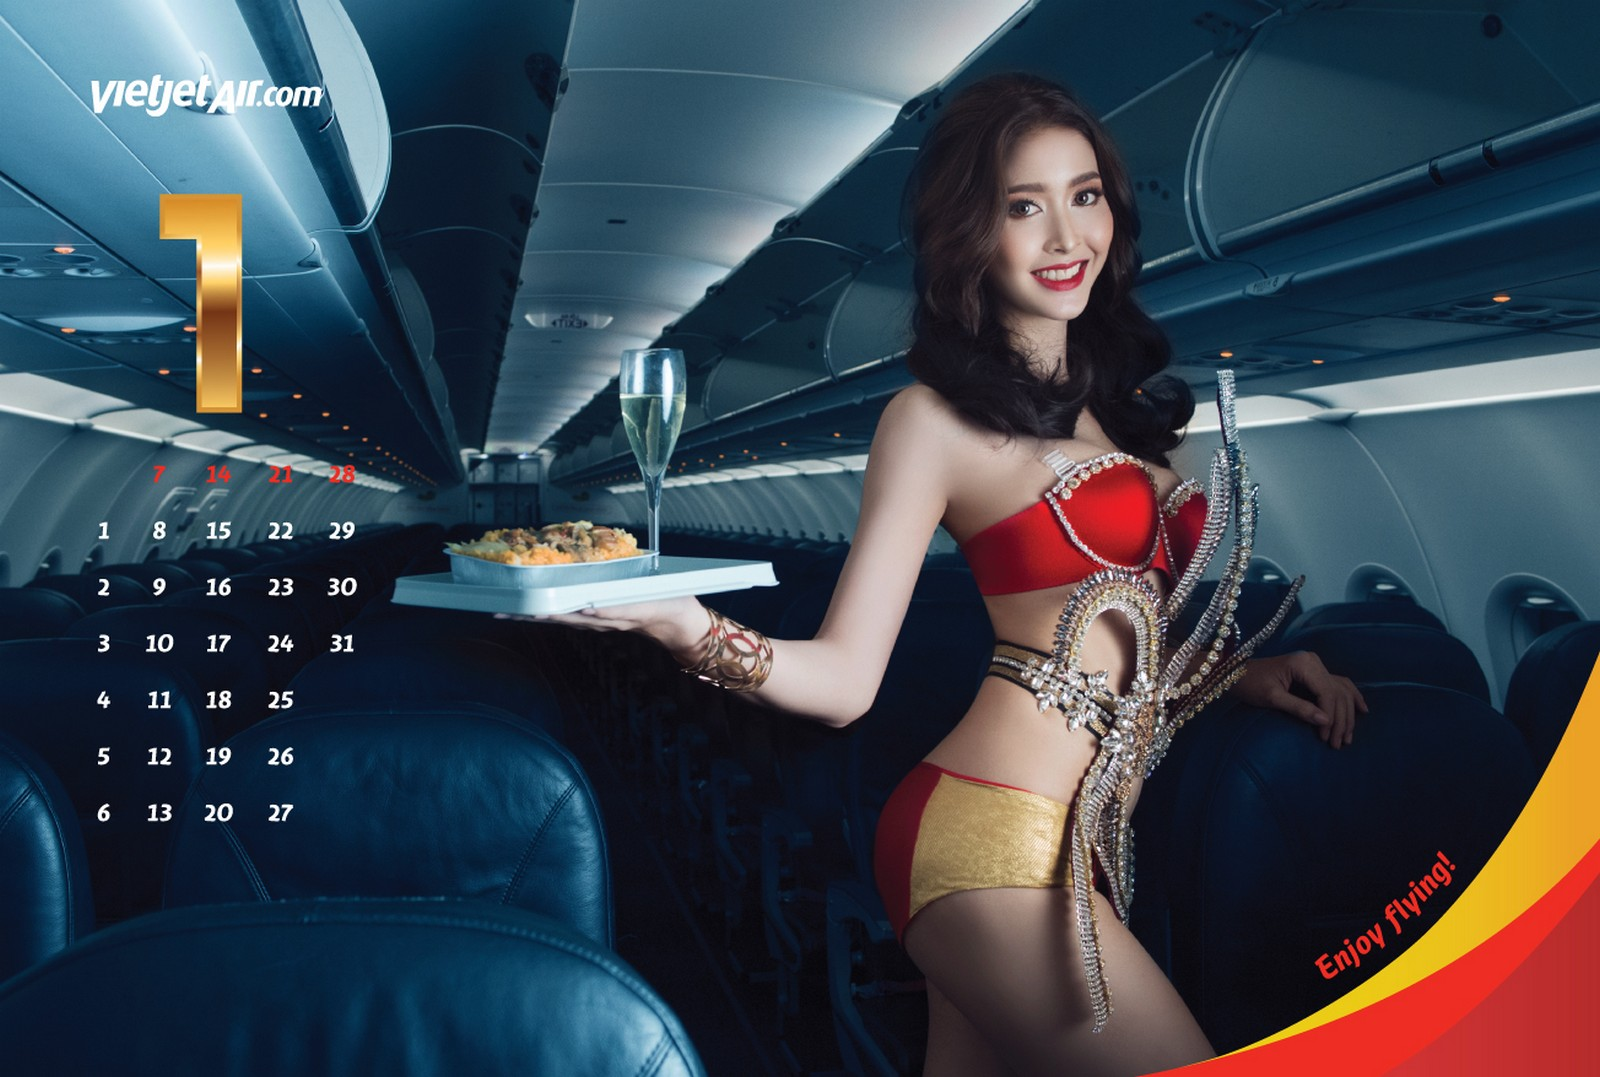 Vietnam's VietJet Aviation 'bikini' calendar, a marketing ploy featuring scantily clad female models.